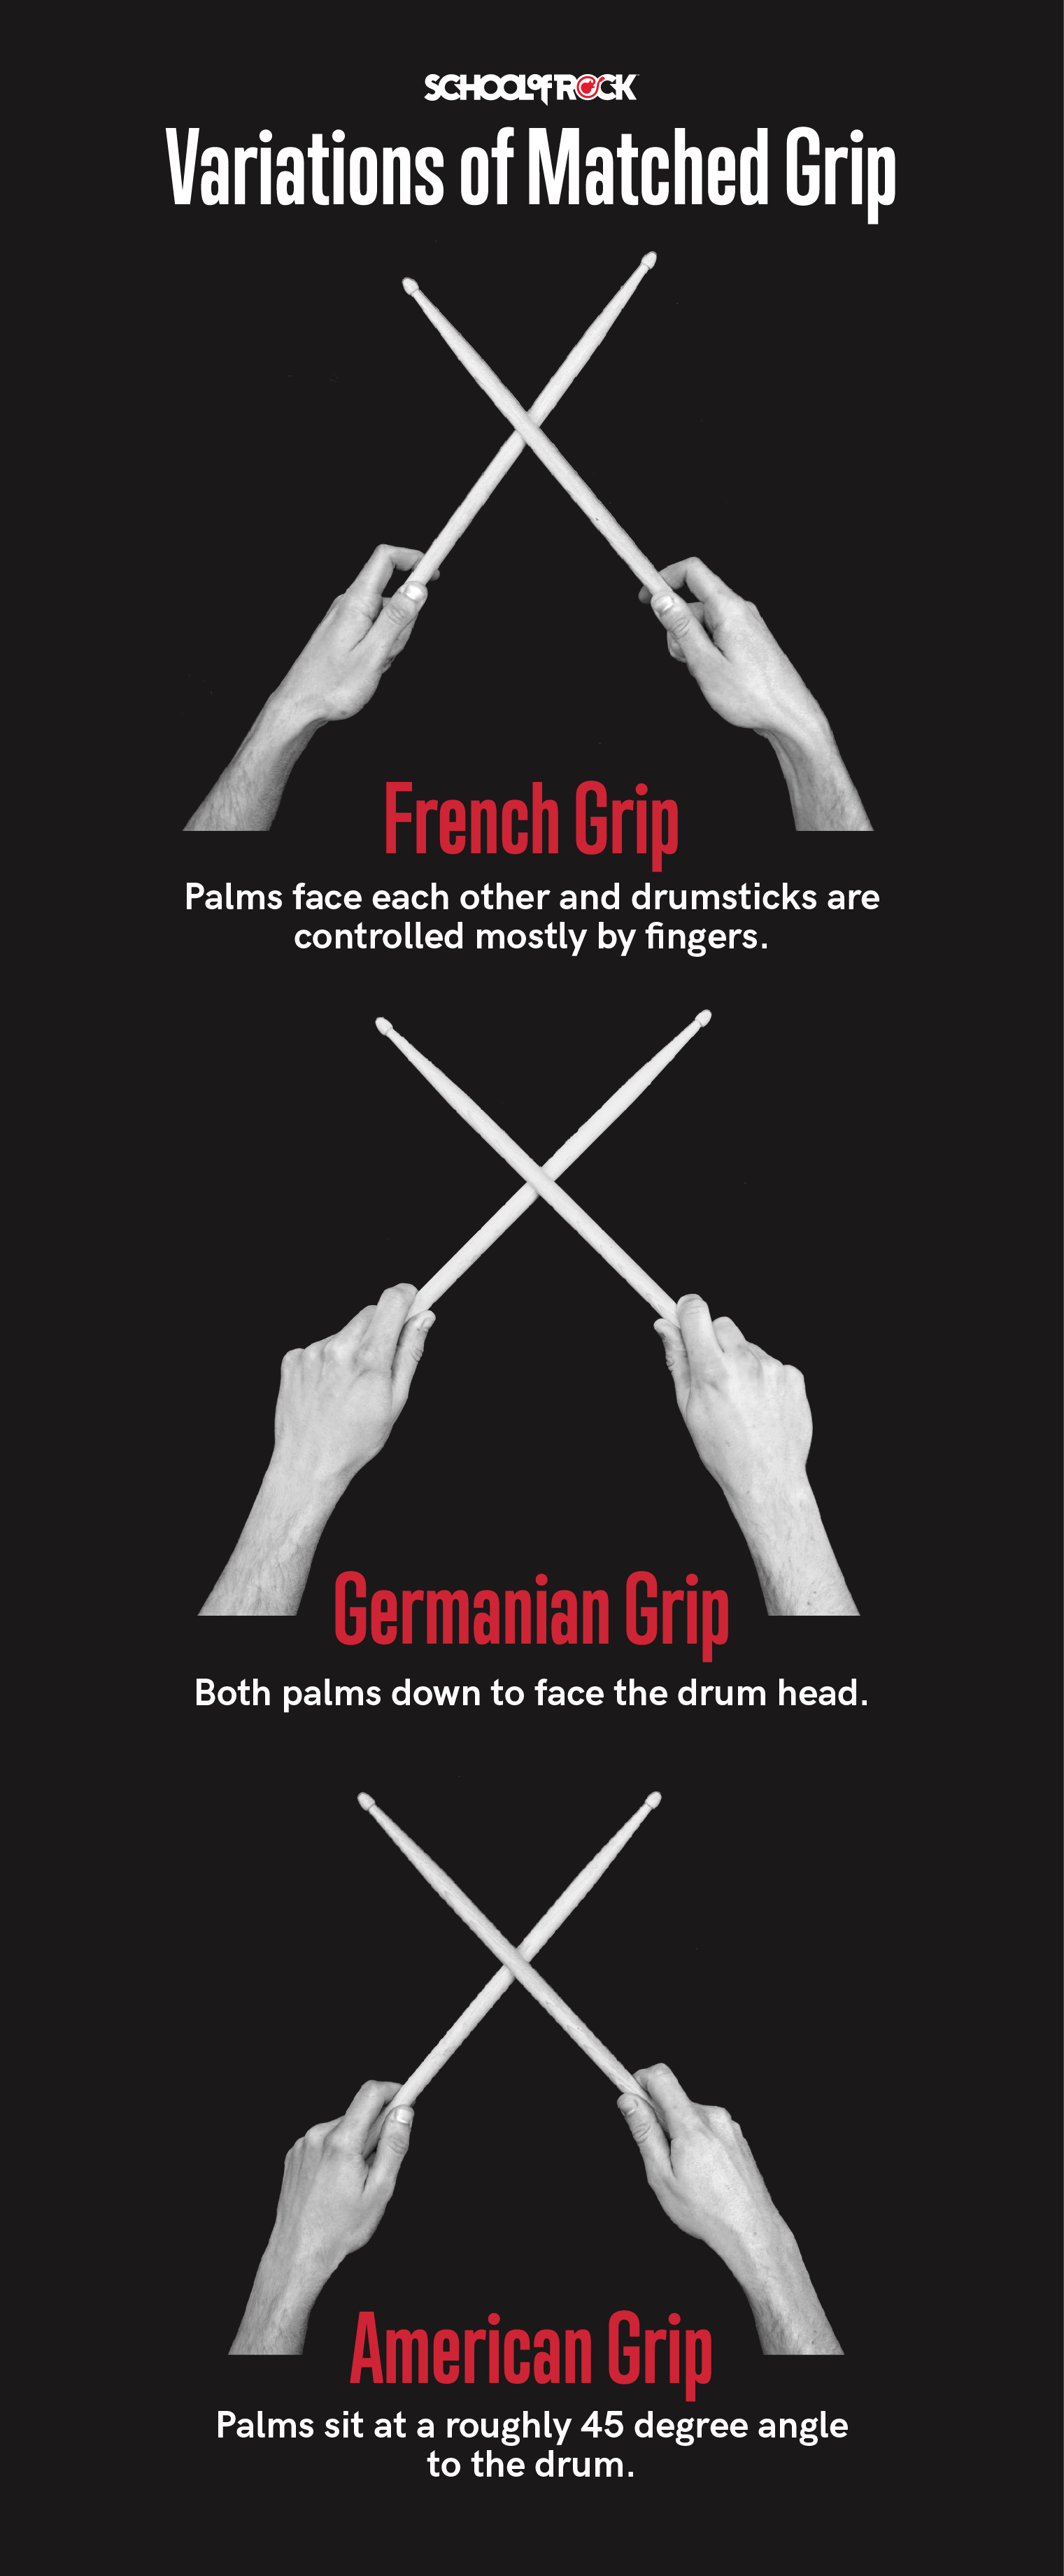 Variations for matched grip for drums